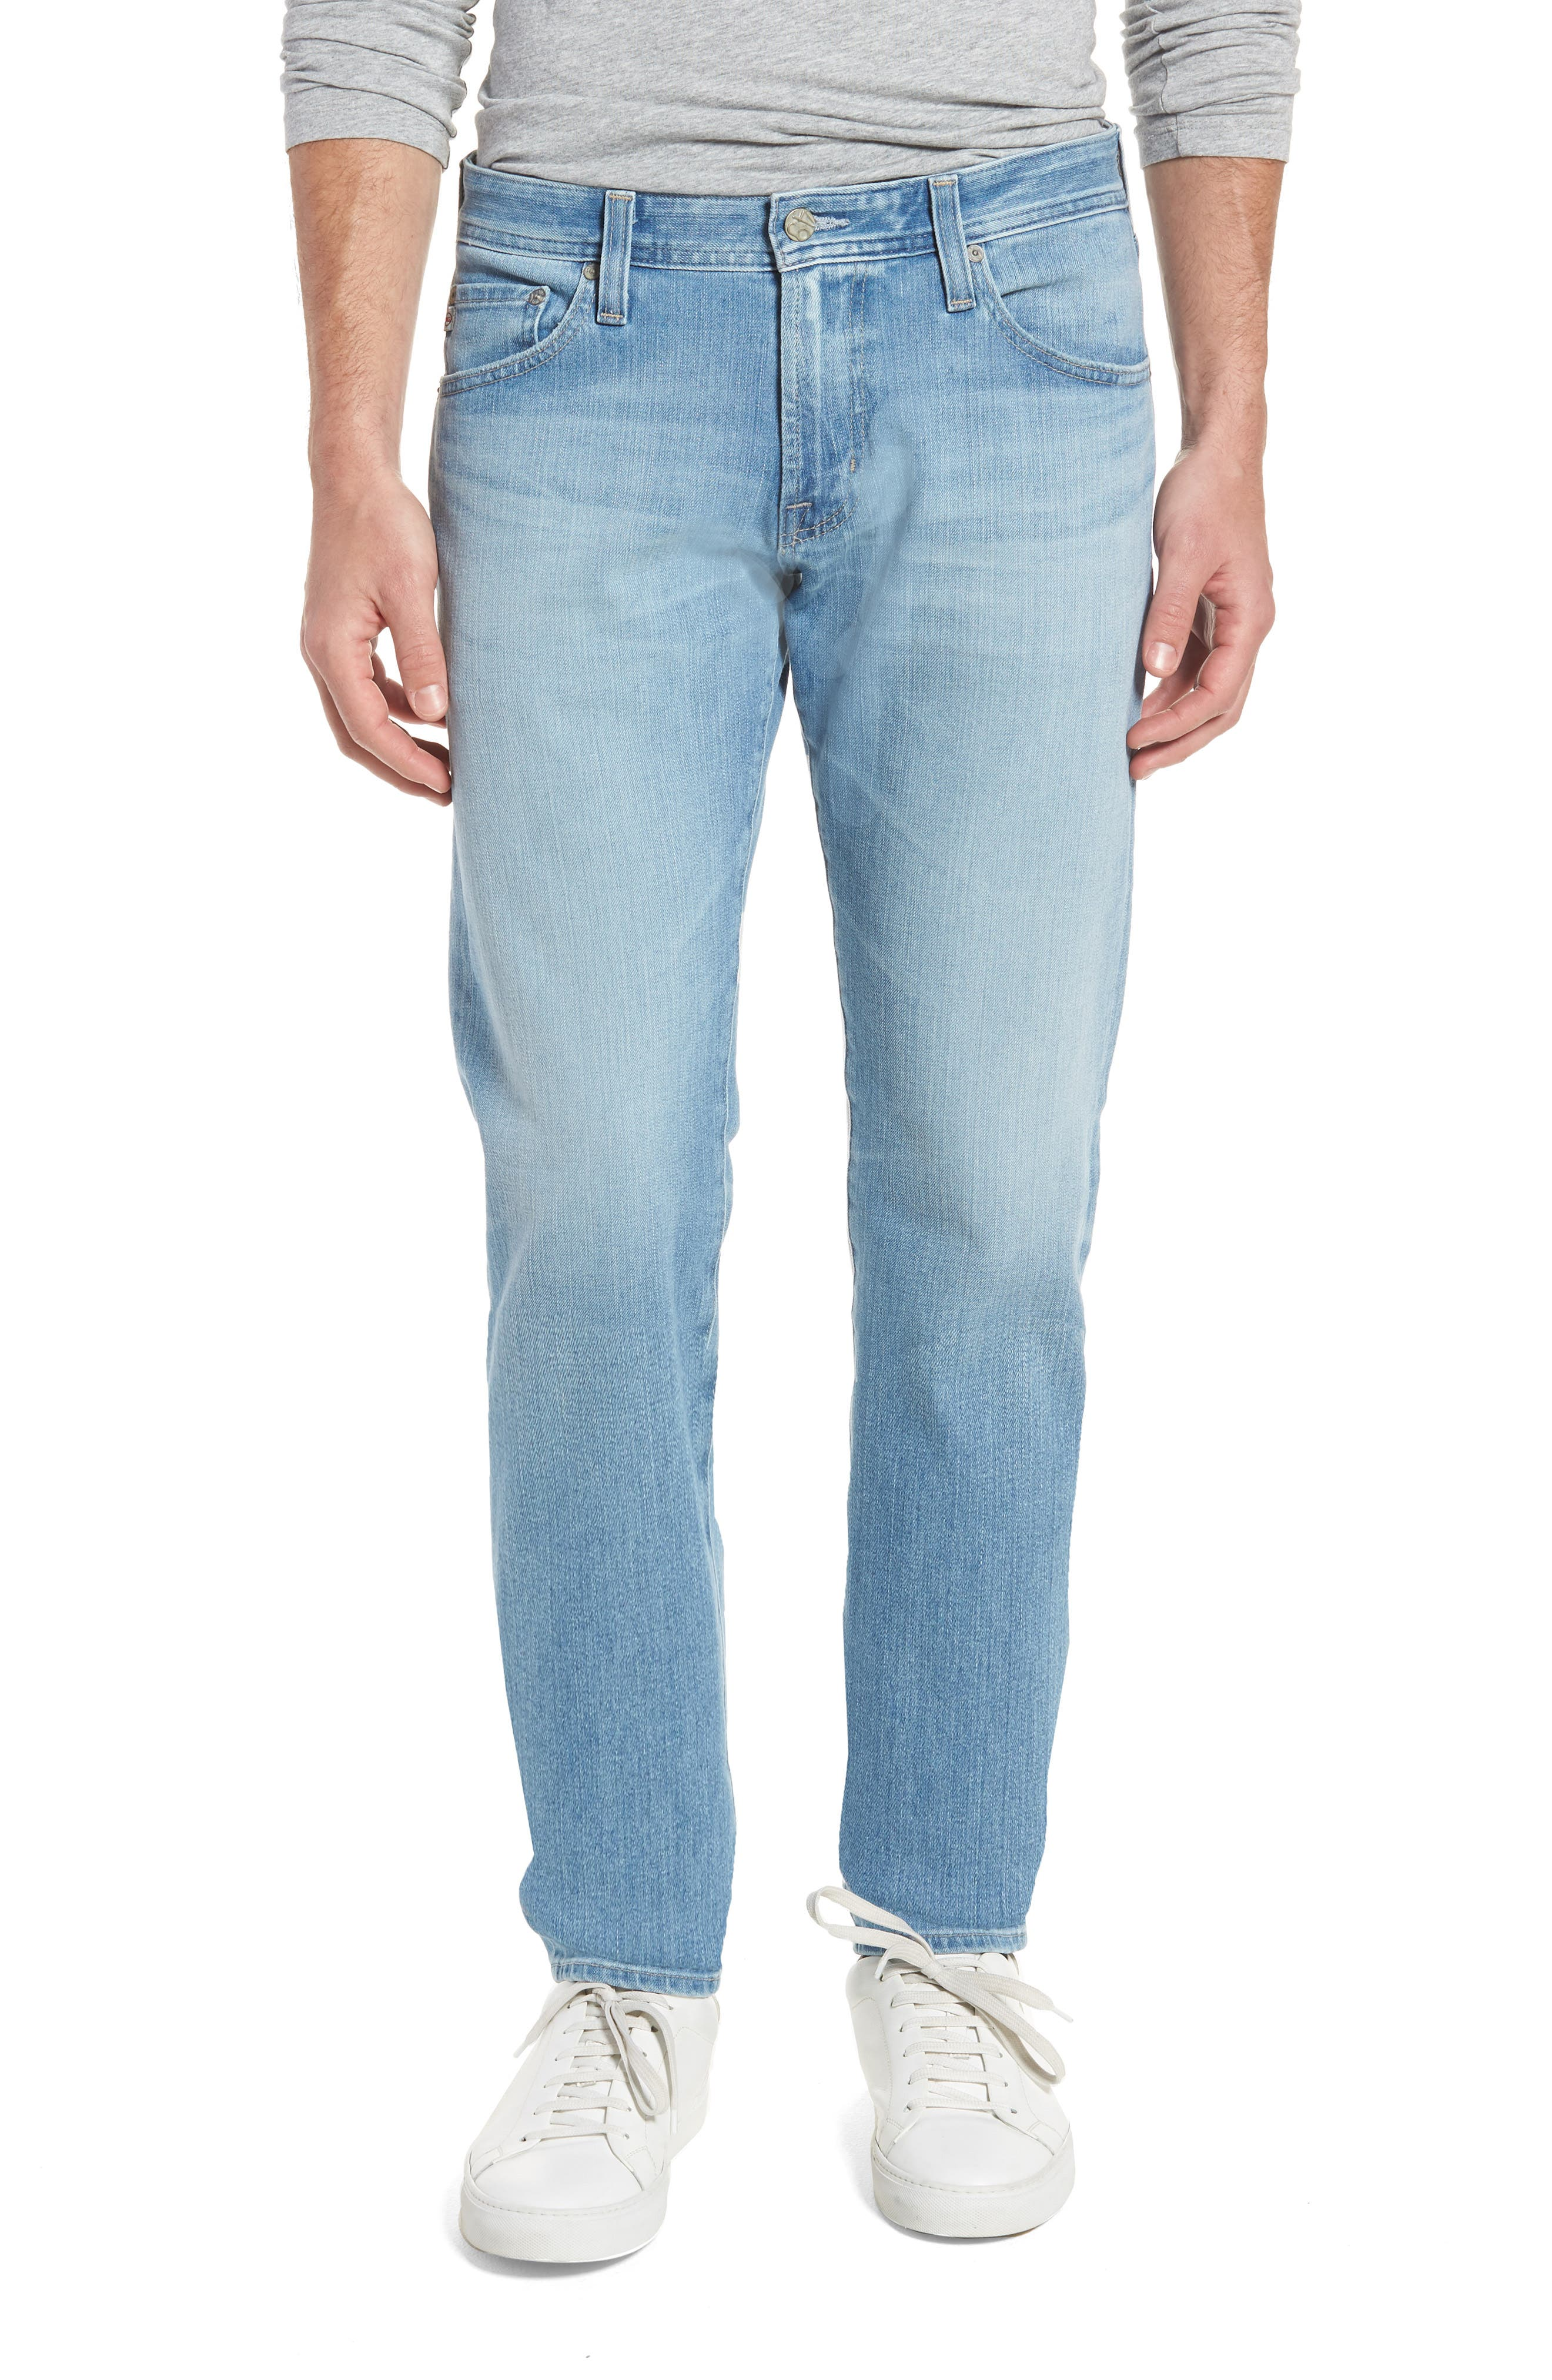 Tellis Slim Fit Jeans,                             Main thumbnail 1, color,                             19 Years Channel